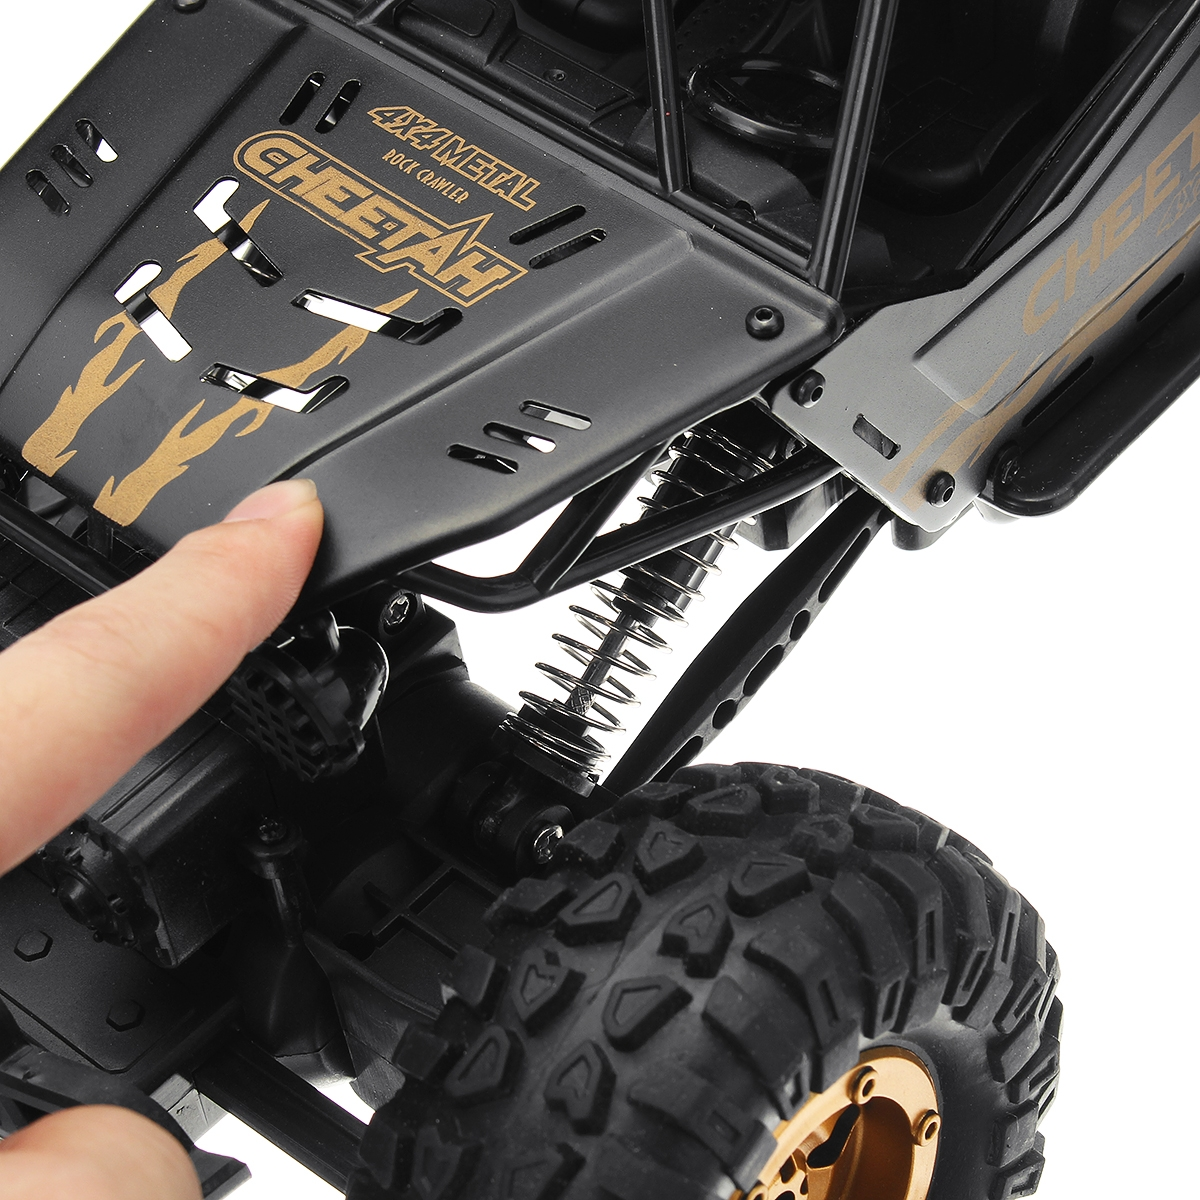 KYAMRC 1/12 2.4G 4WD RC Car Crawler Metal Body Vehicle Models Truck Indoor Outdoor Toys